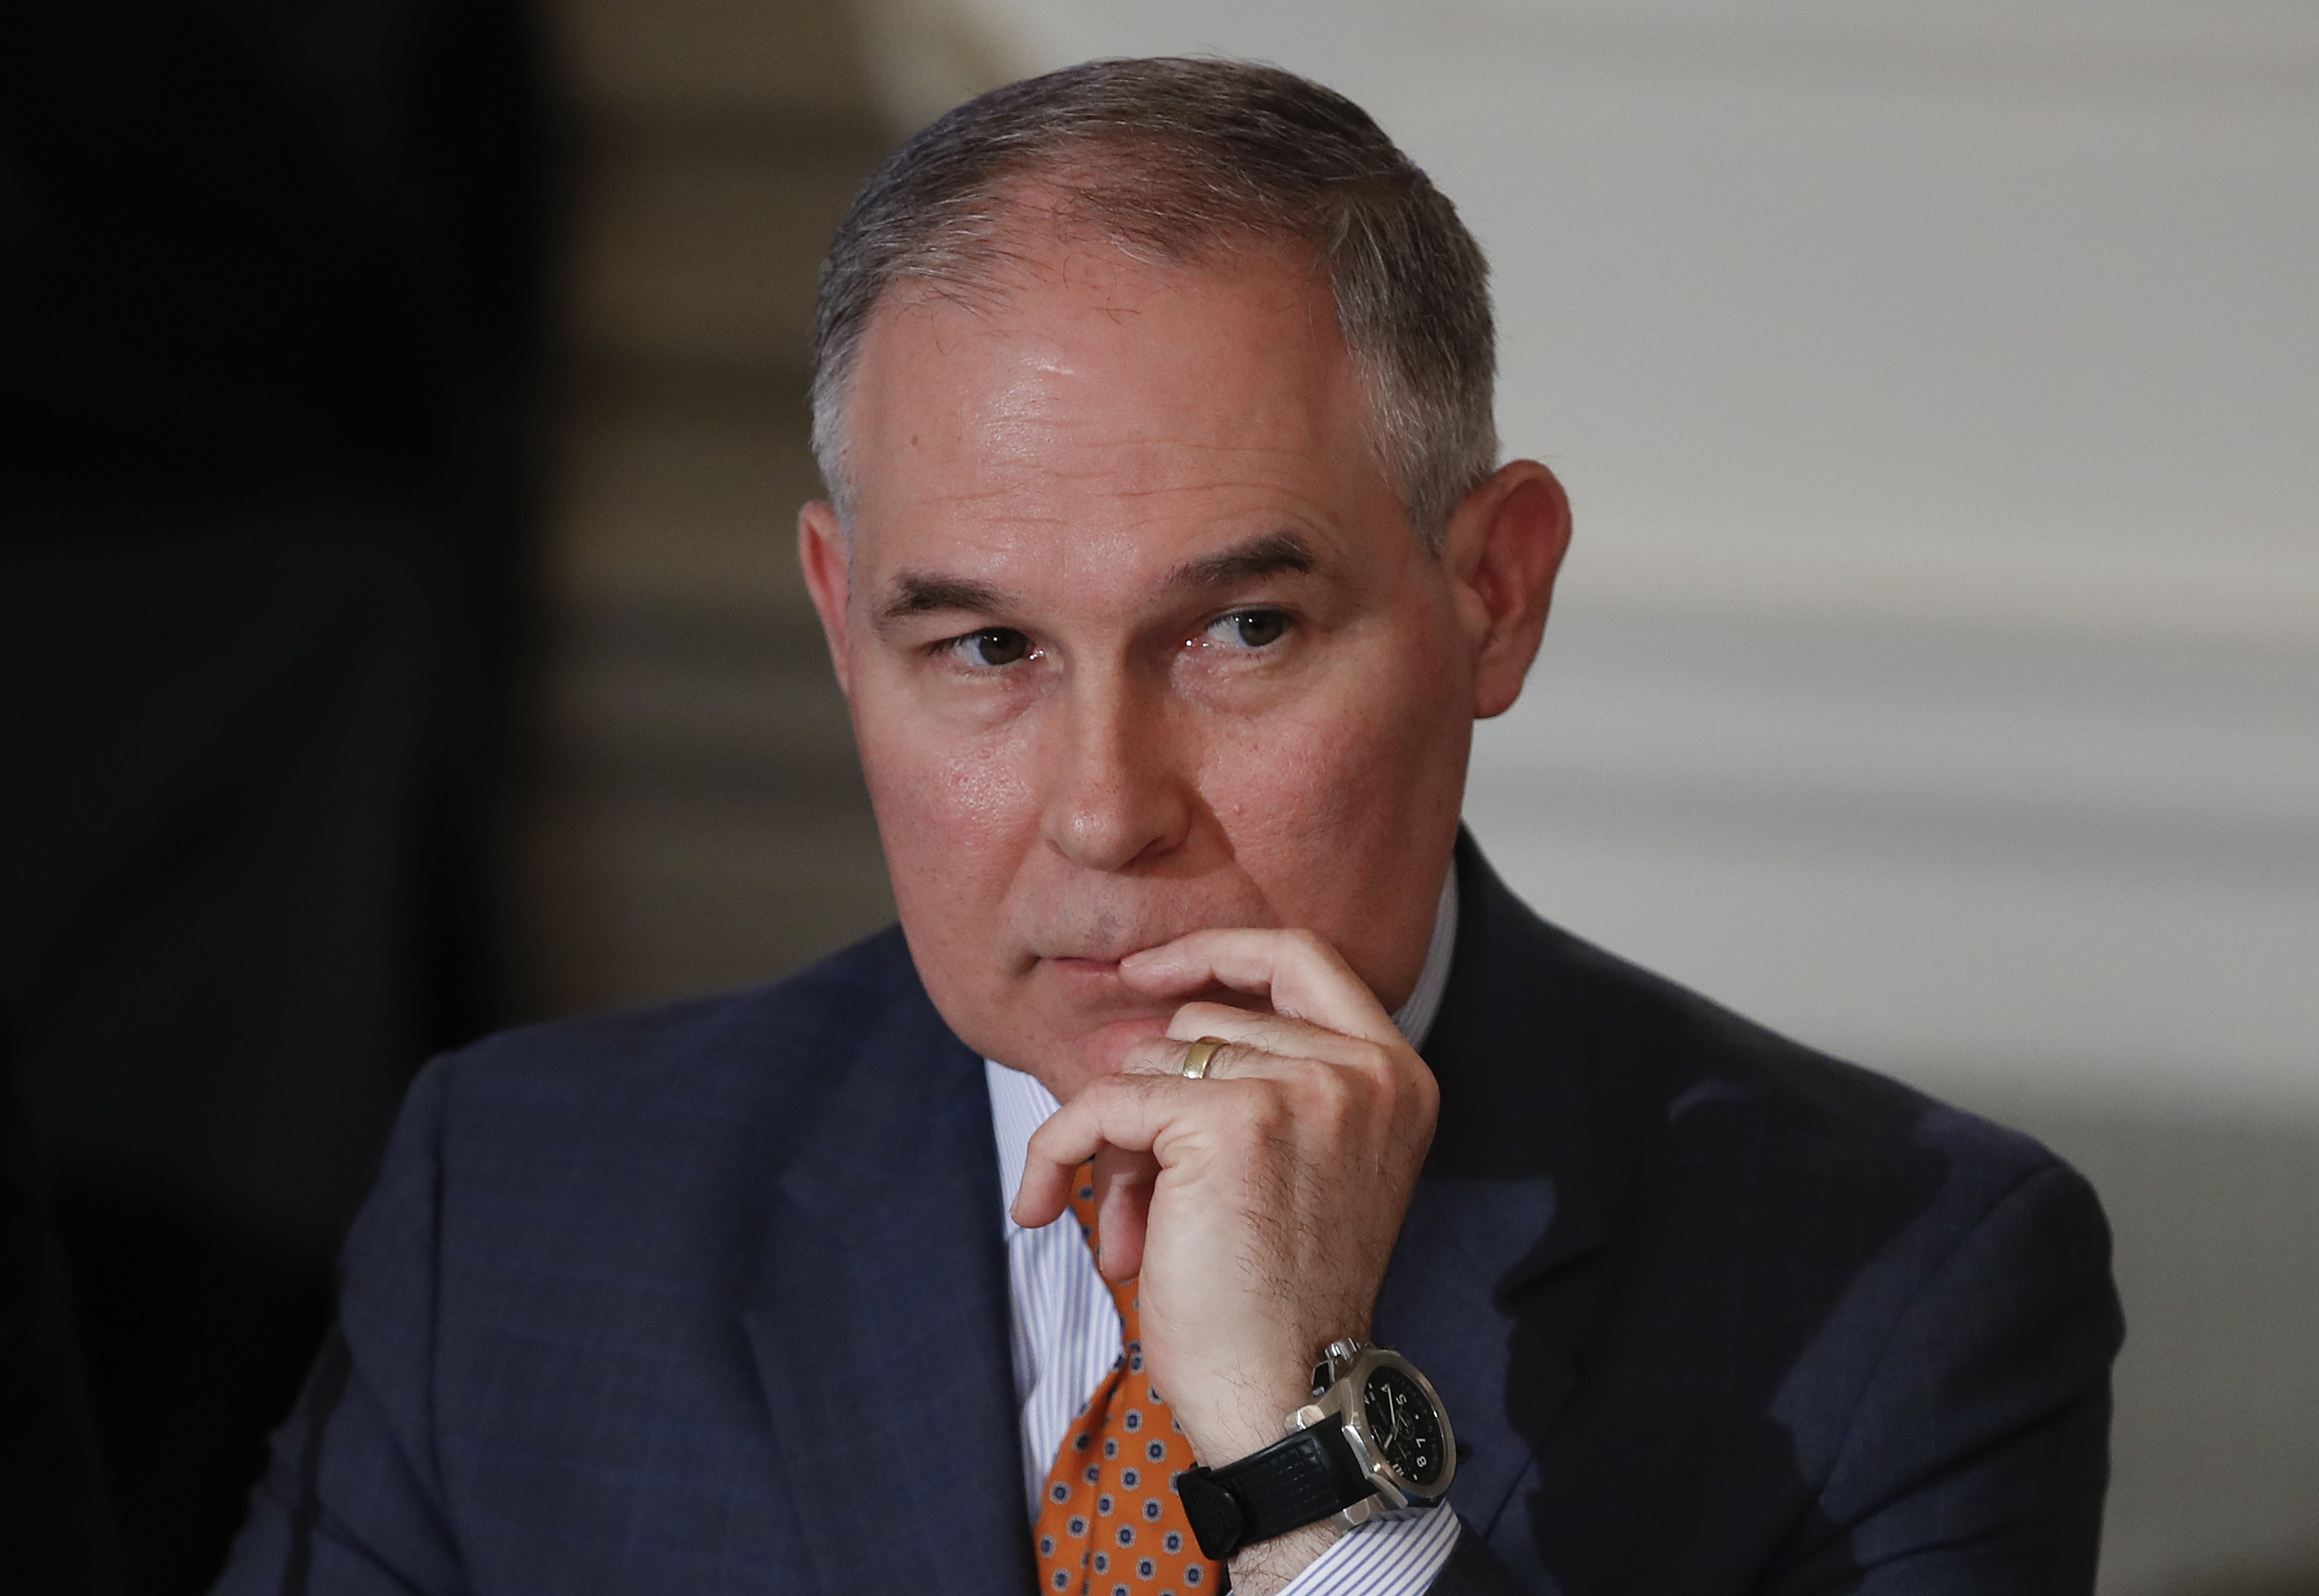 Scott Pruitt says he flies first class due to 'toxic' politics, safety concerns